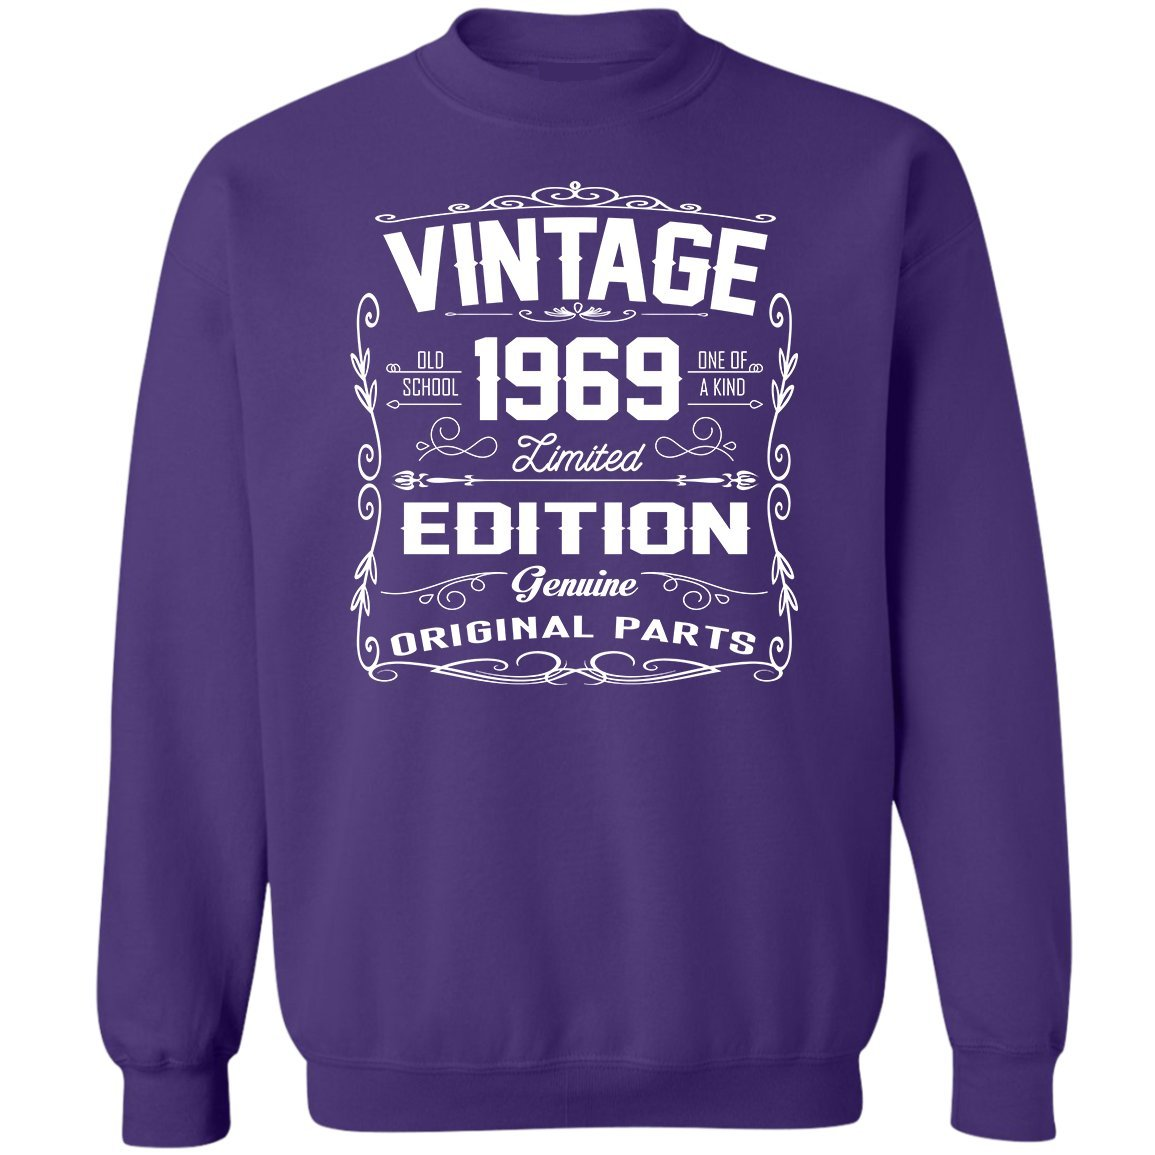 Awesome Gifts For Birthday Sweatshirt VADOBA Vintage 1969 Limited Edition Shirts